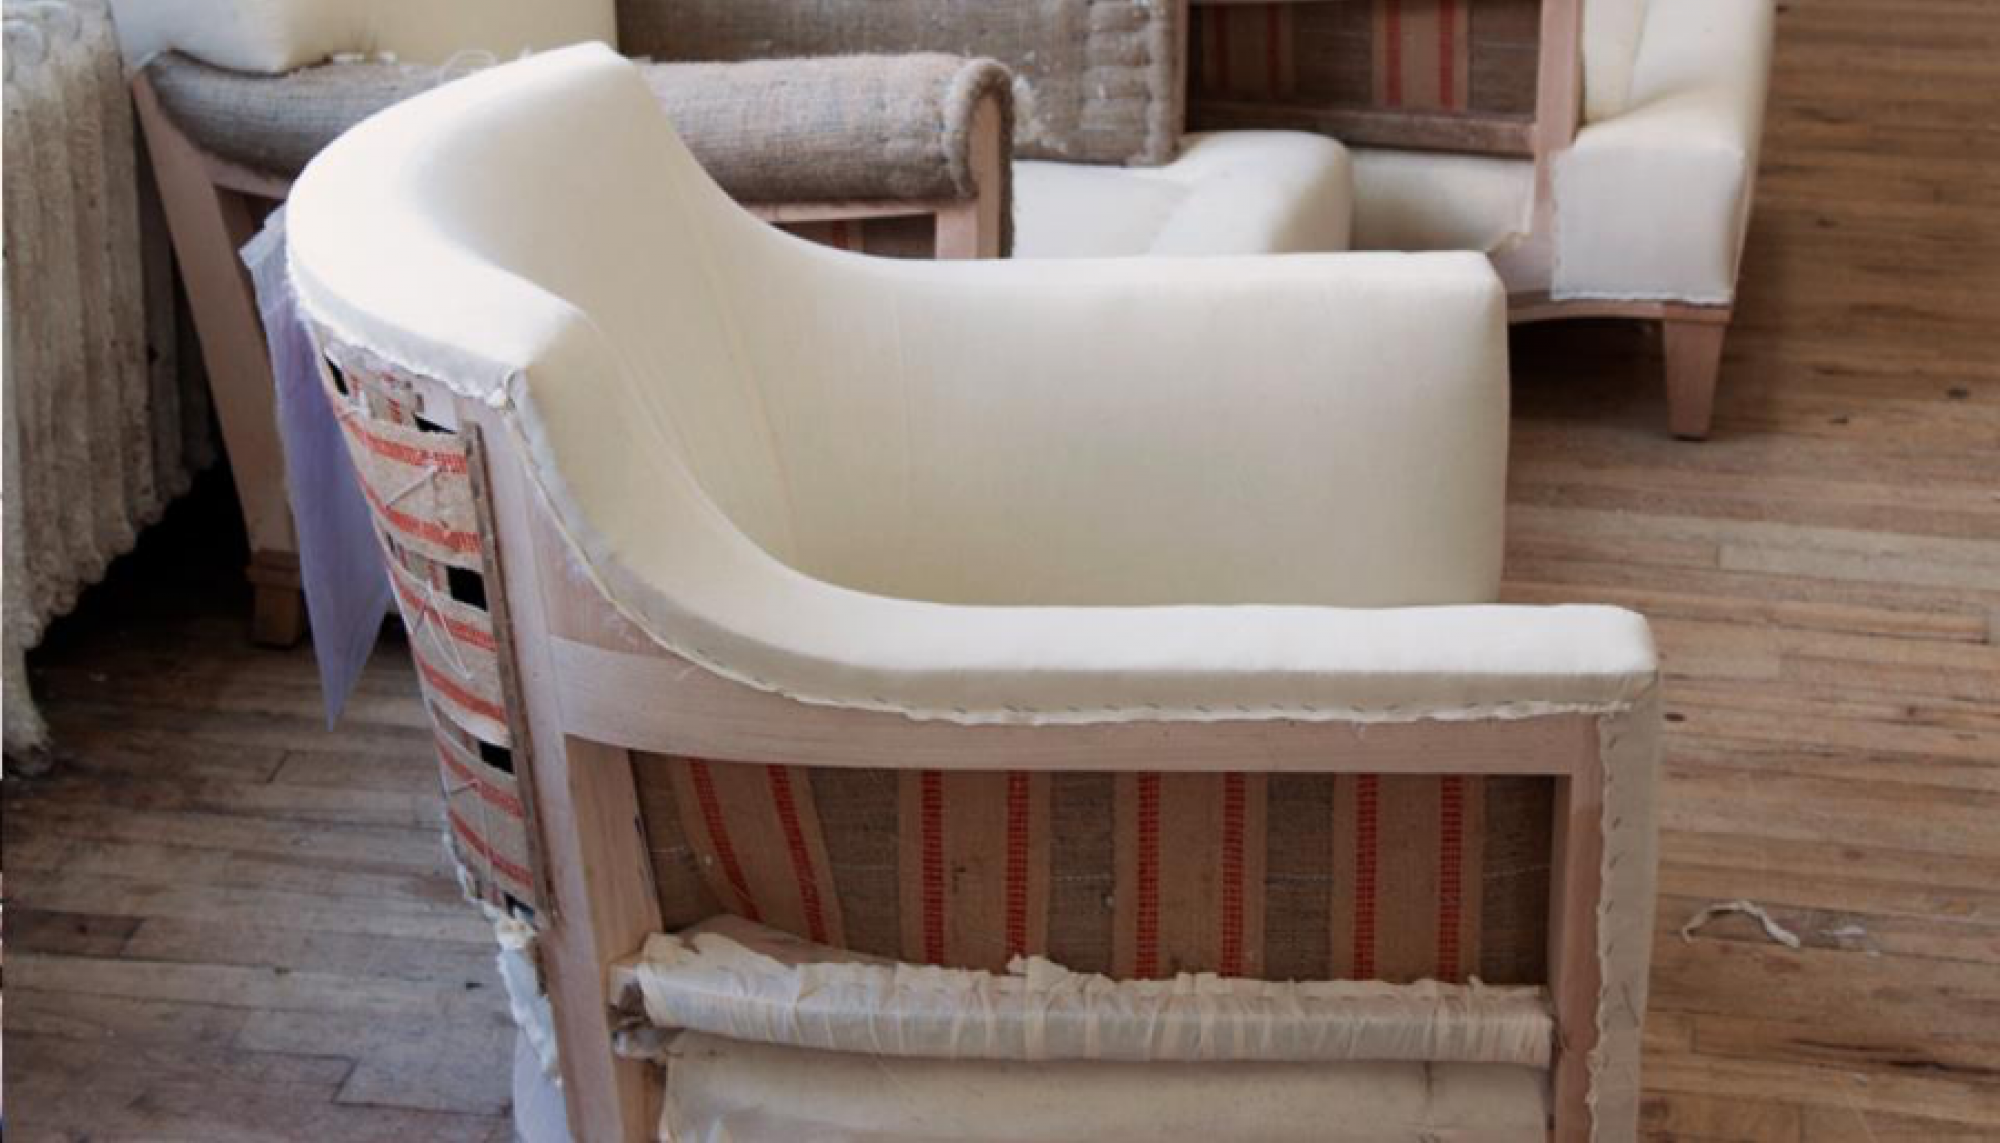 Layers of burlap, cotton and down, or foam if used, are covered with muslin to create a final form. (Image: Jonas Upholsterers)